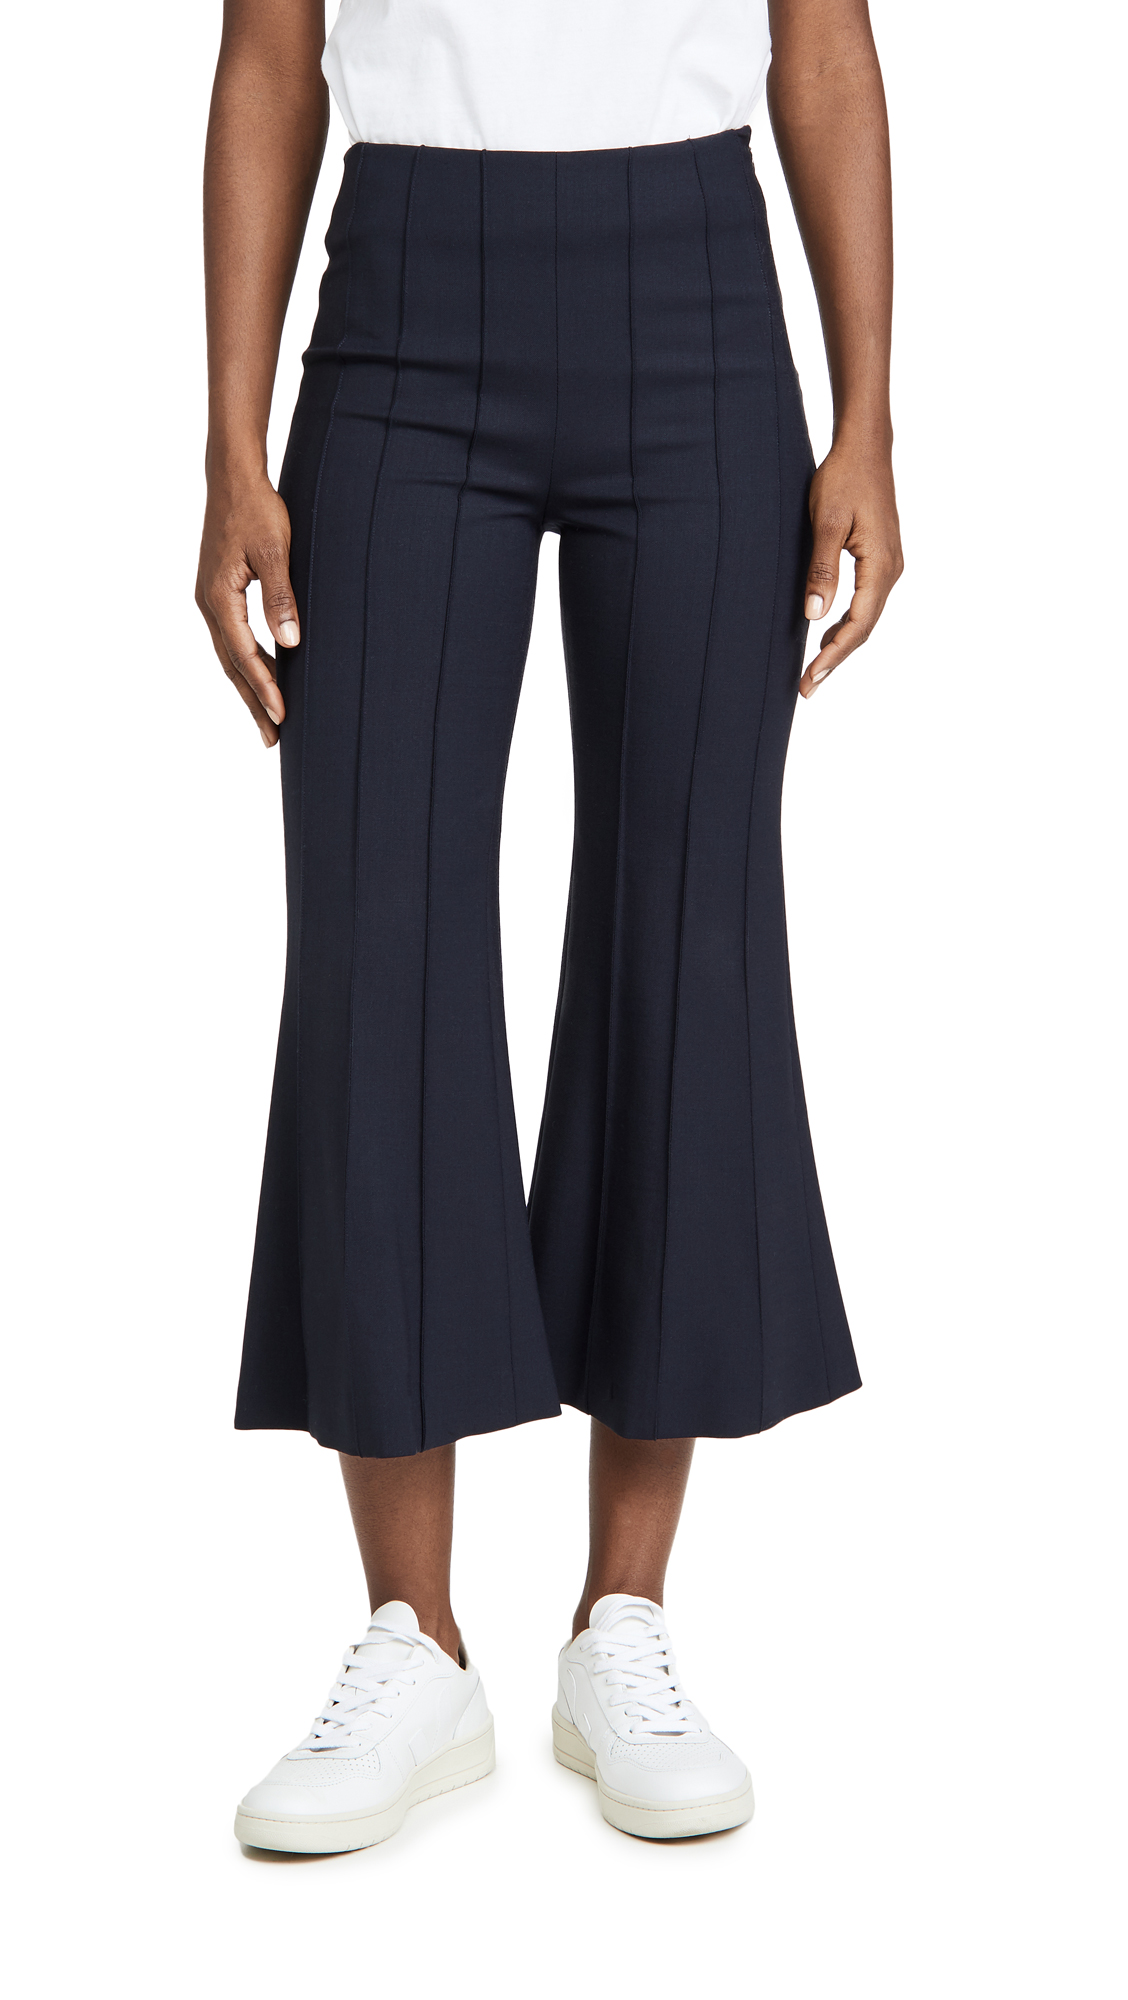 Monse Wools CROPPED FLARE PINTUCK PANTS